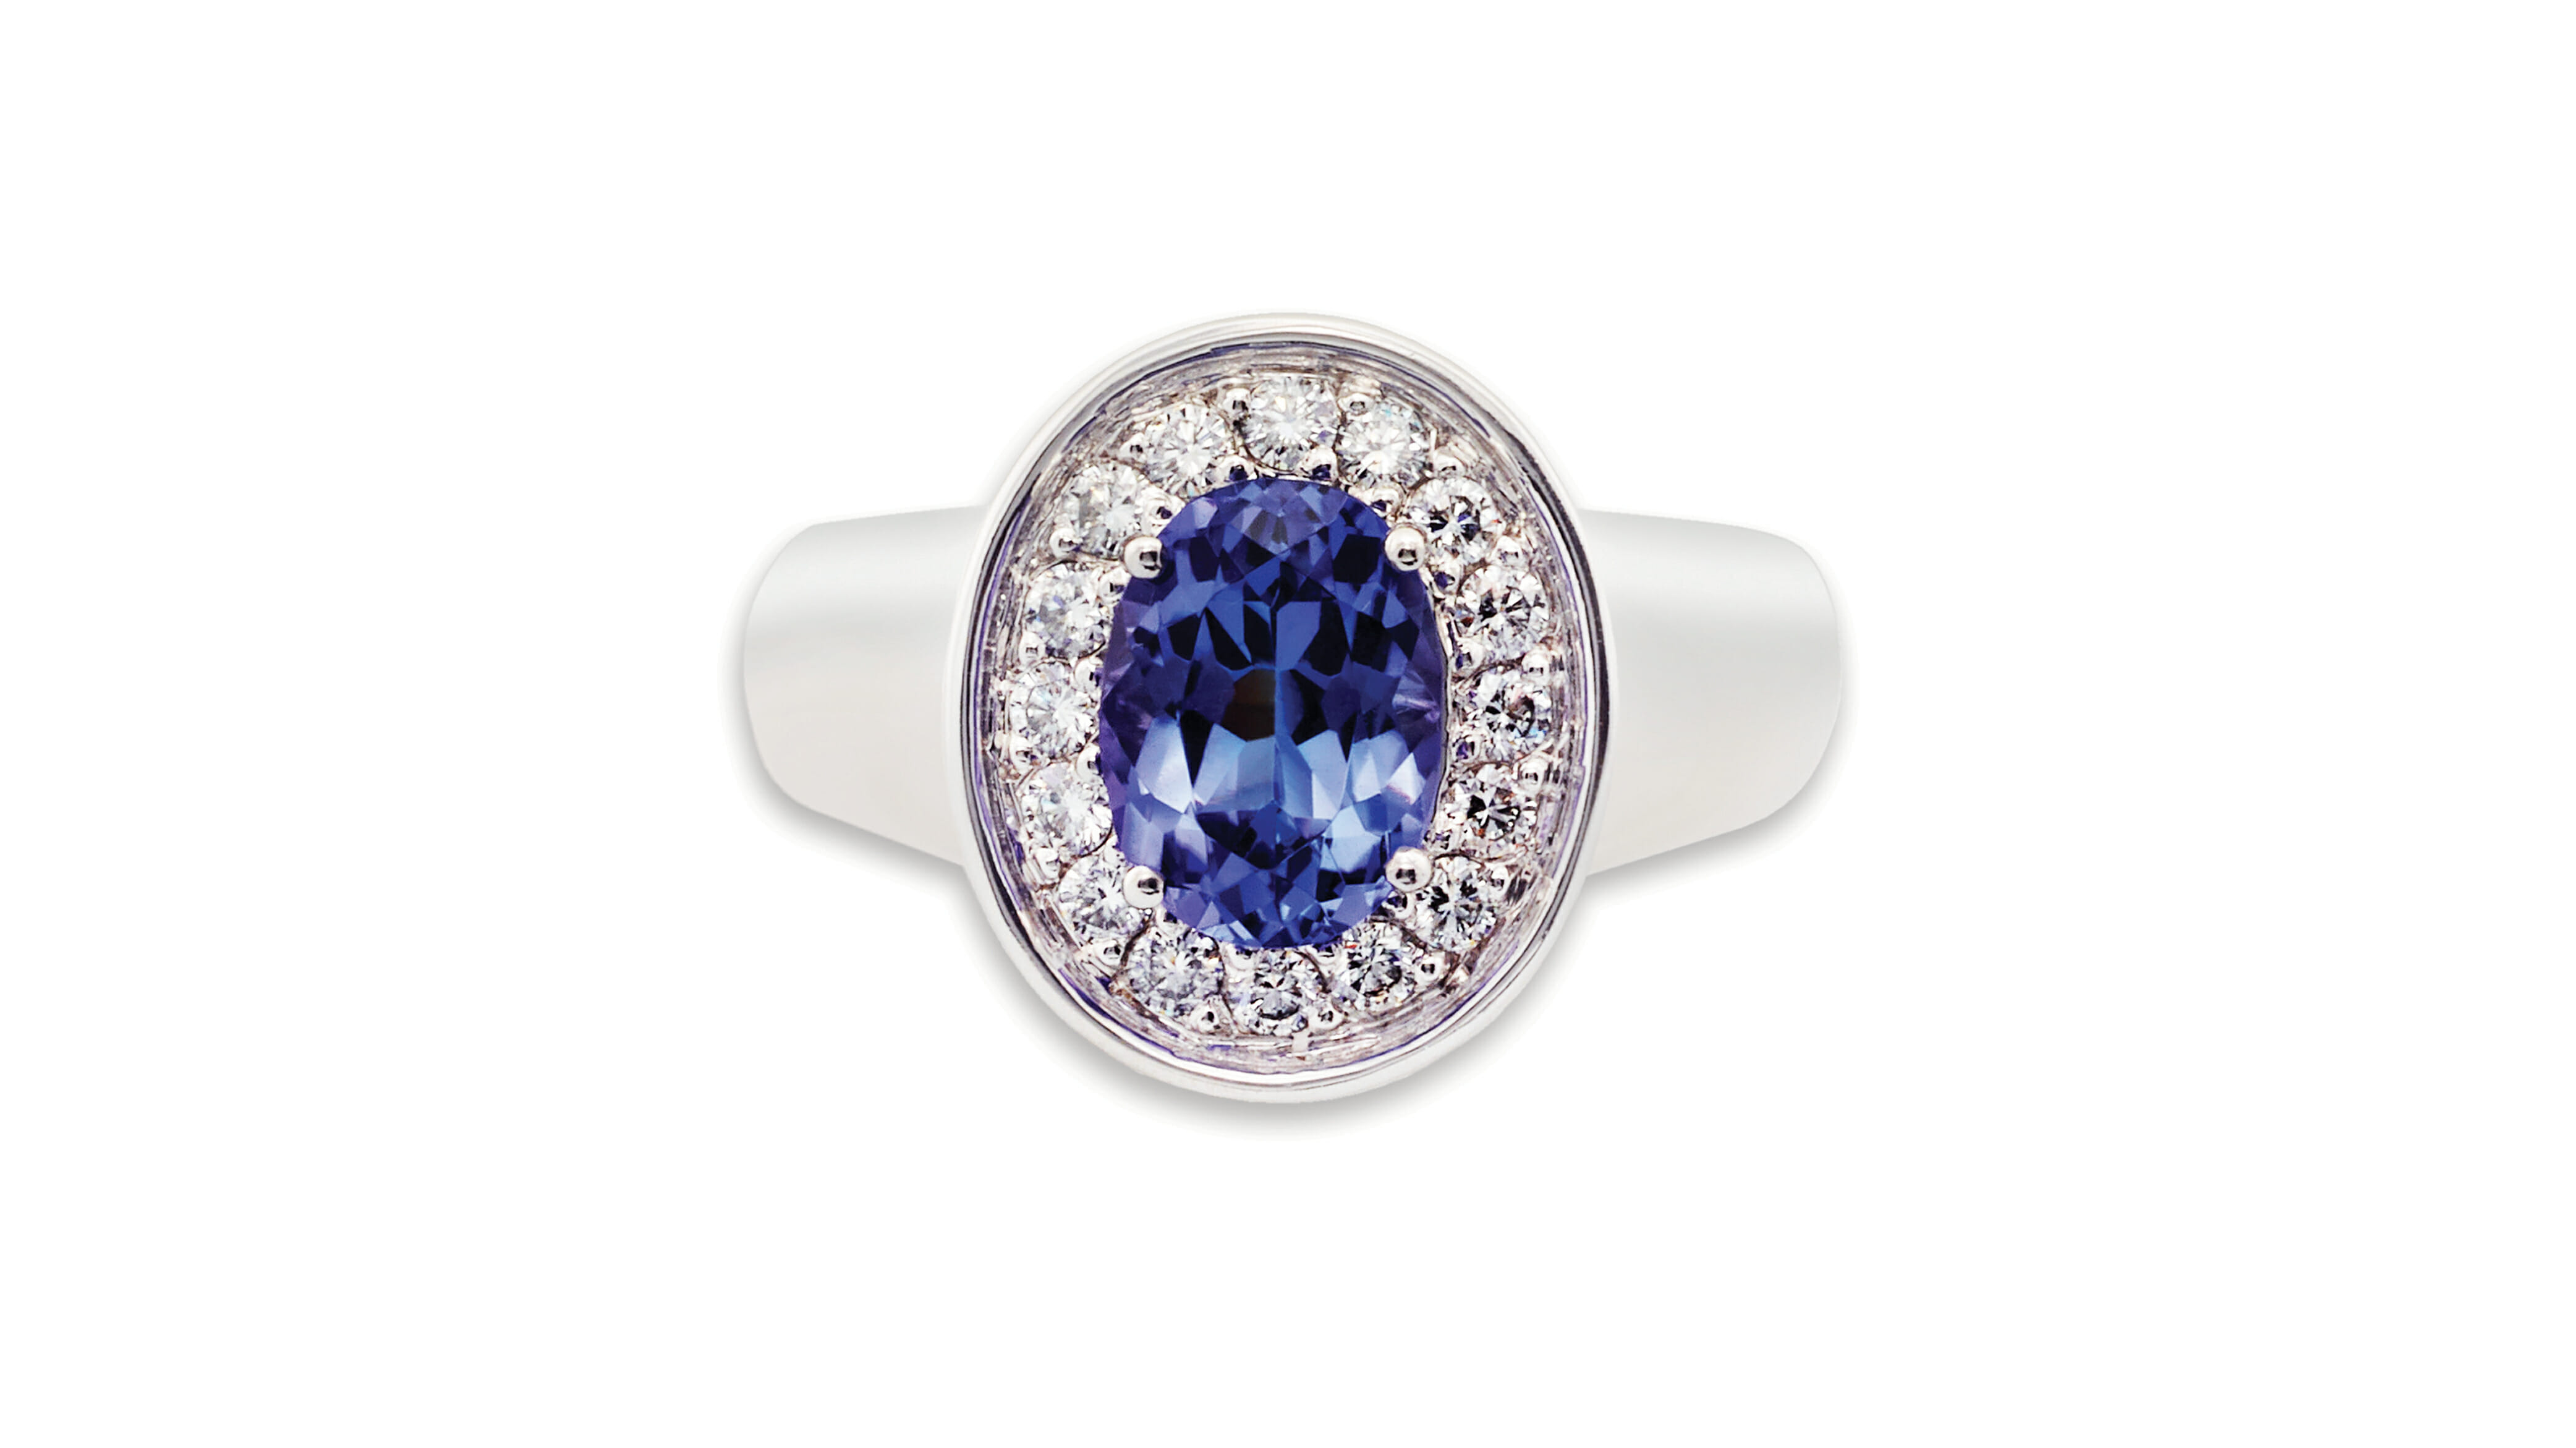 Tanzanite and diamond broad ring | A rare African tanzanite set in white gold, surrounded by a halo of sparkling diamonds